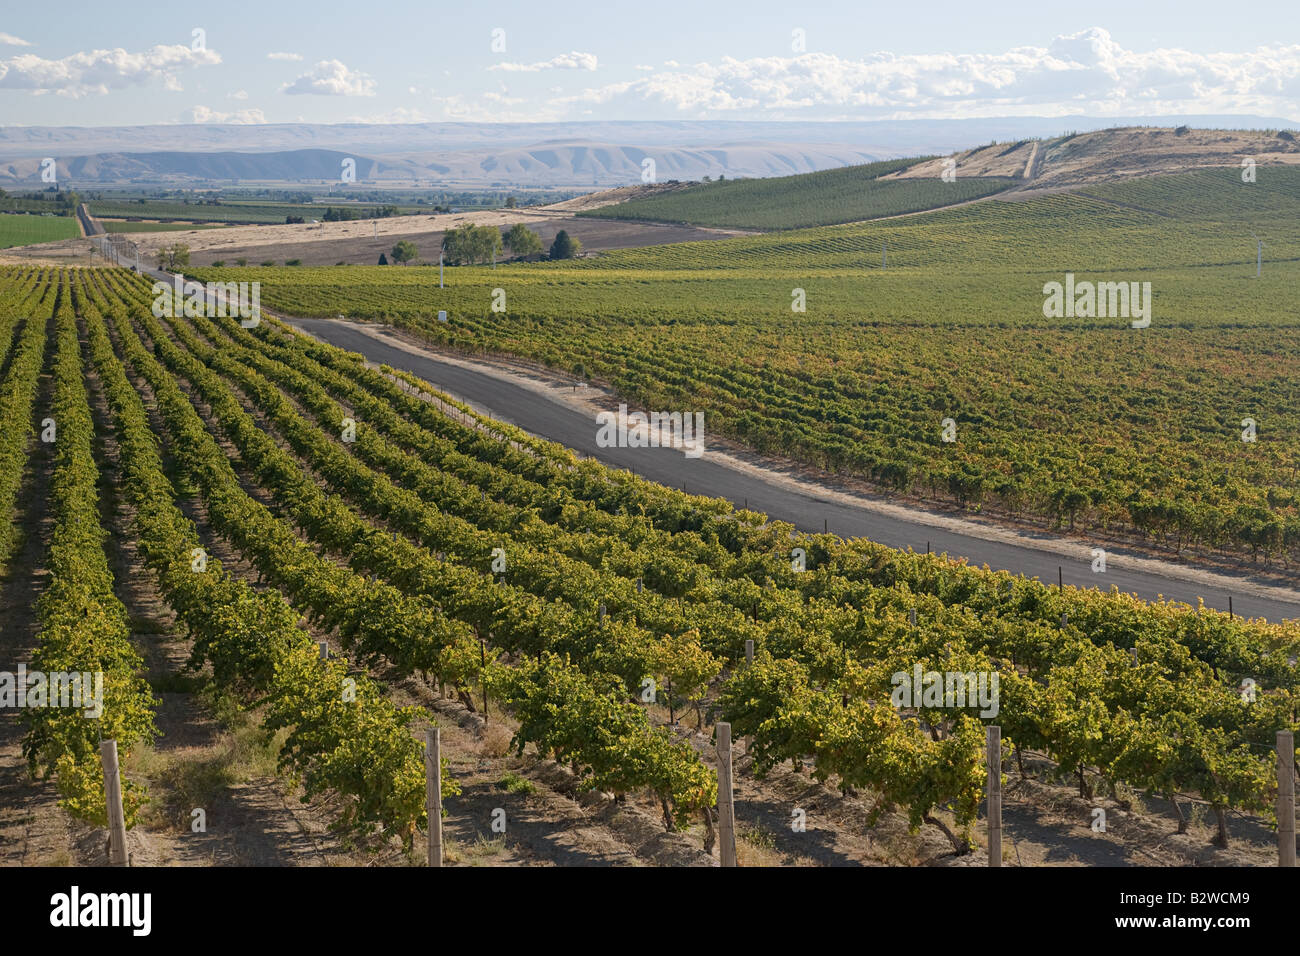 Vine yard - Stock Image